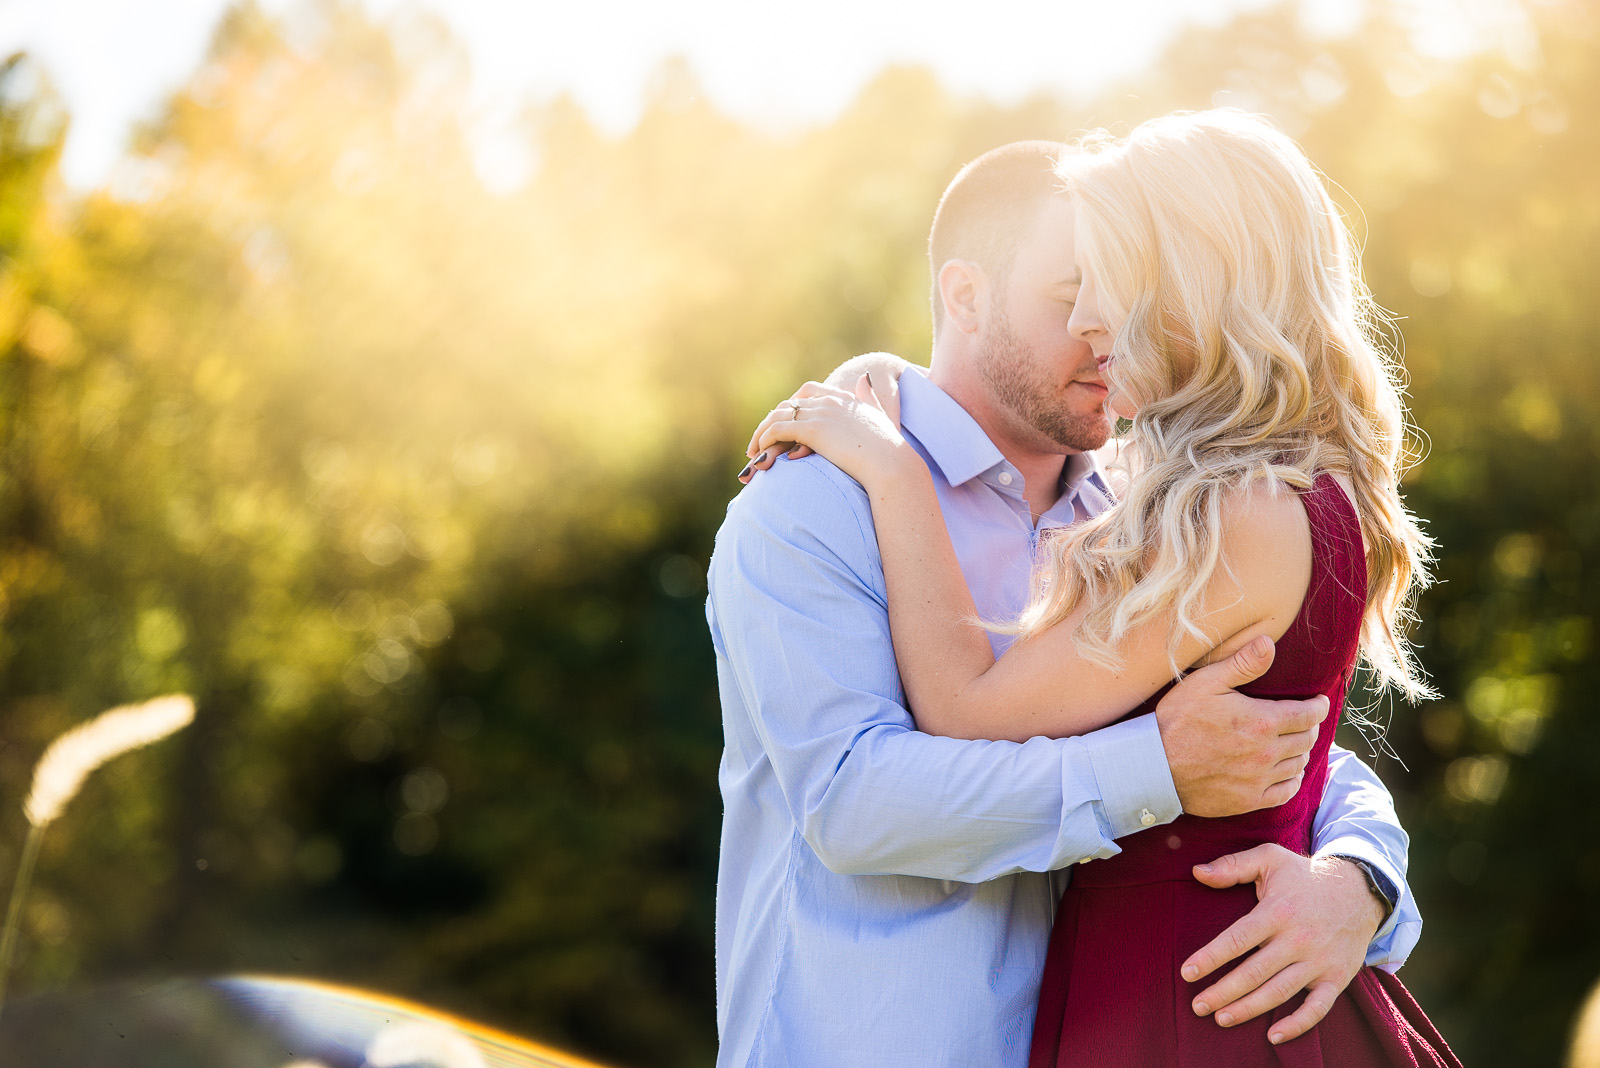 Eric_and_Christy_Photography_Blog_2016_Best_Engagement--9